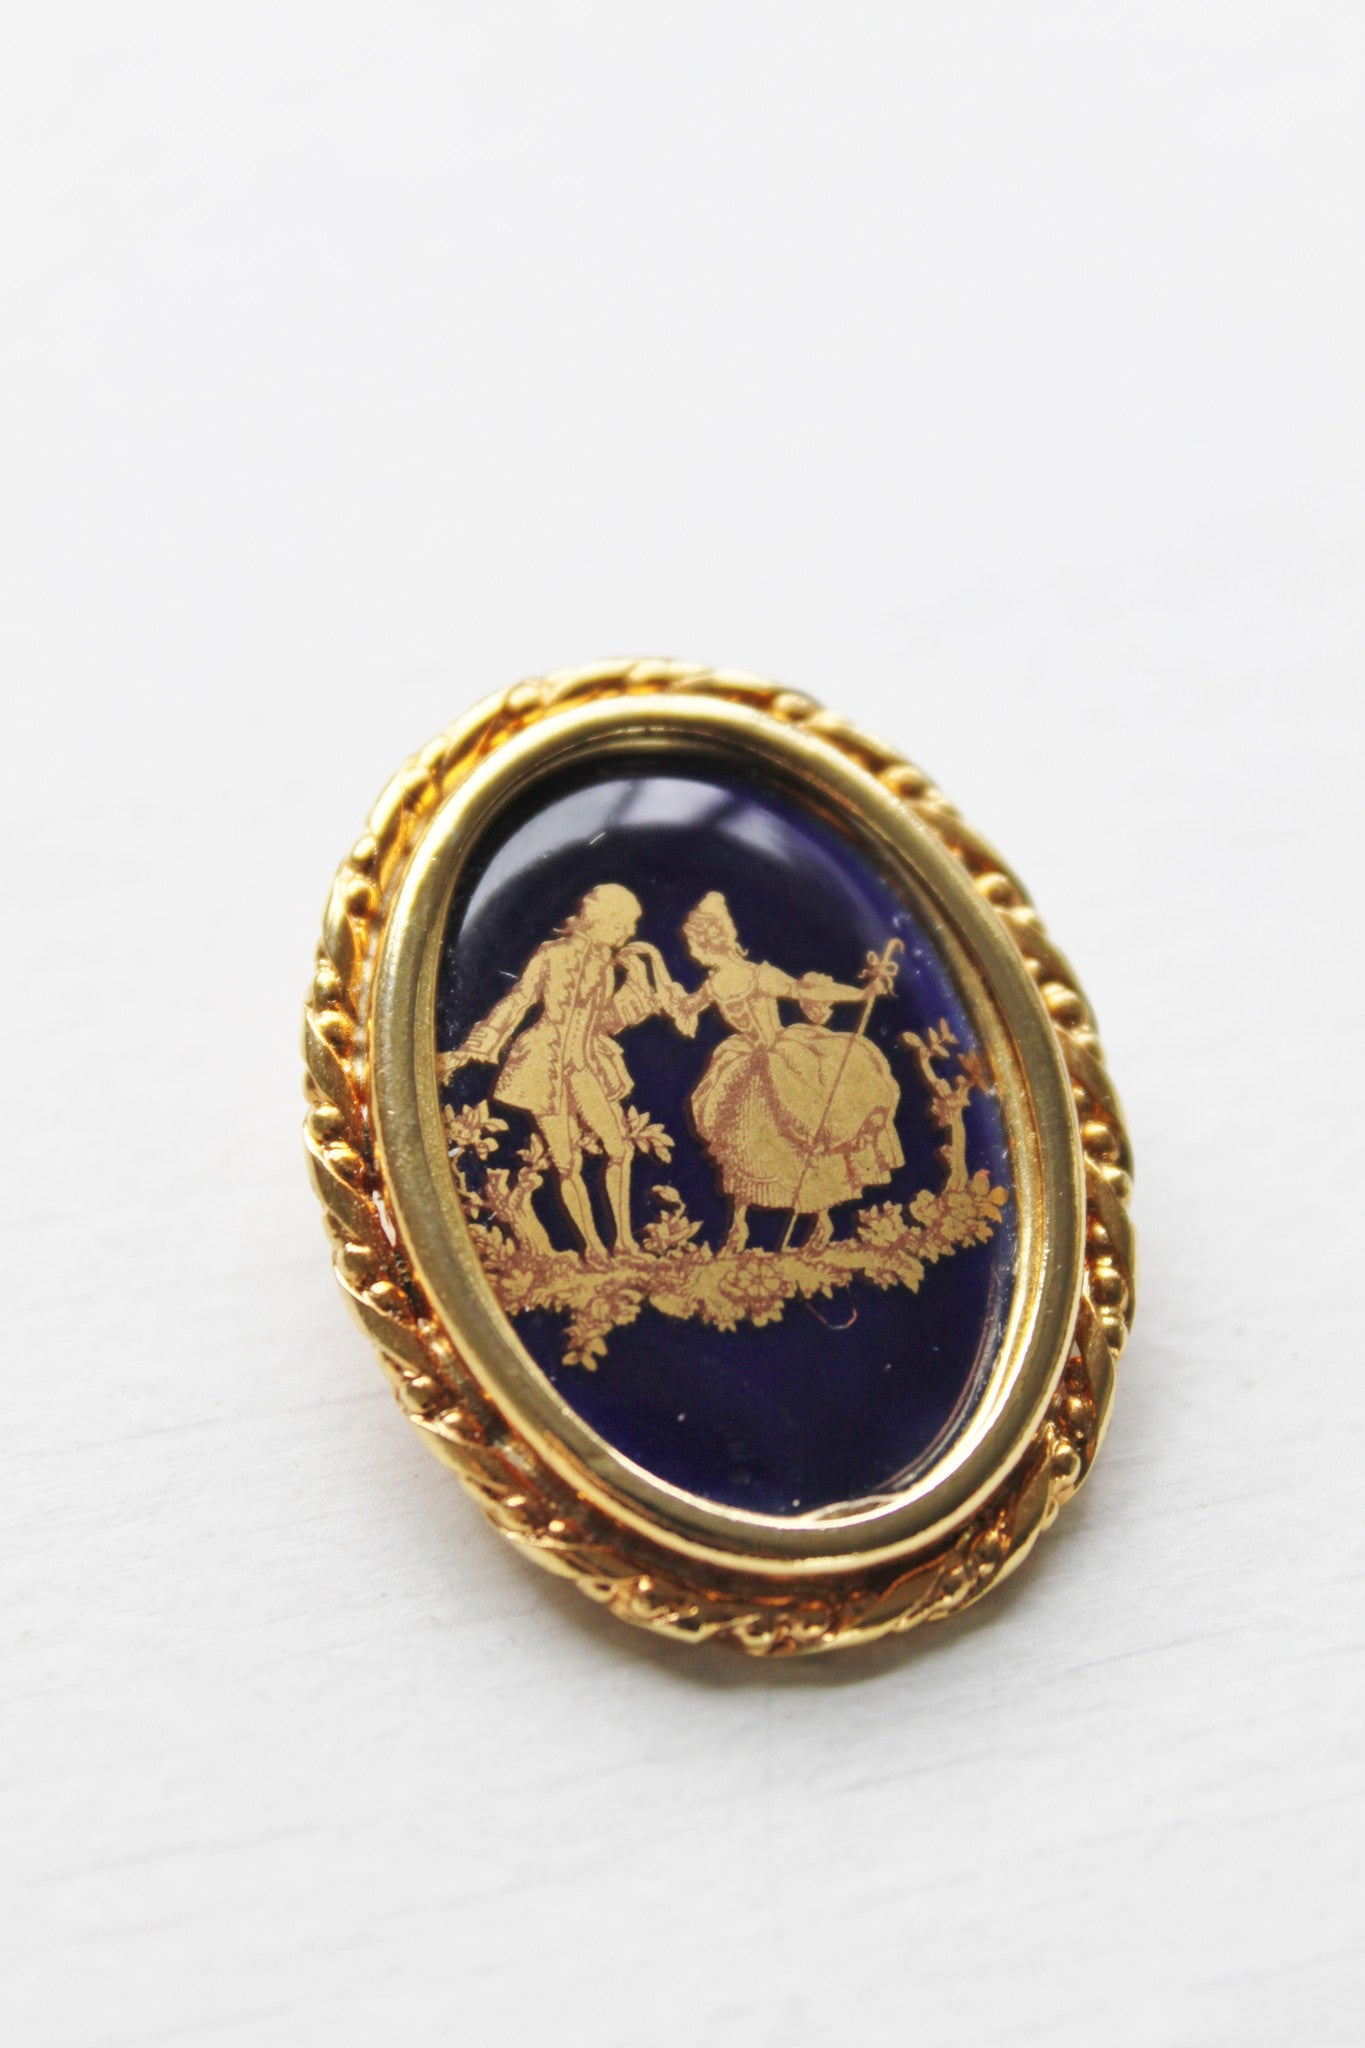 Takes Two to Love Limoges Porcelain Brooch